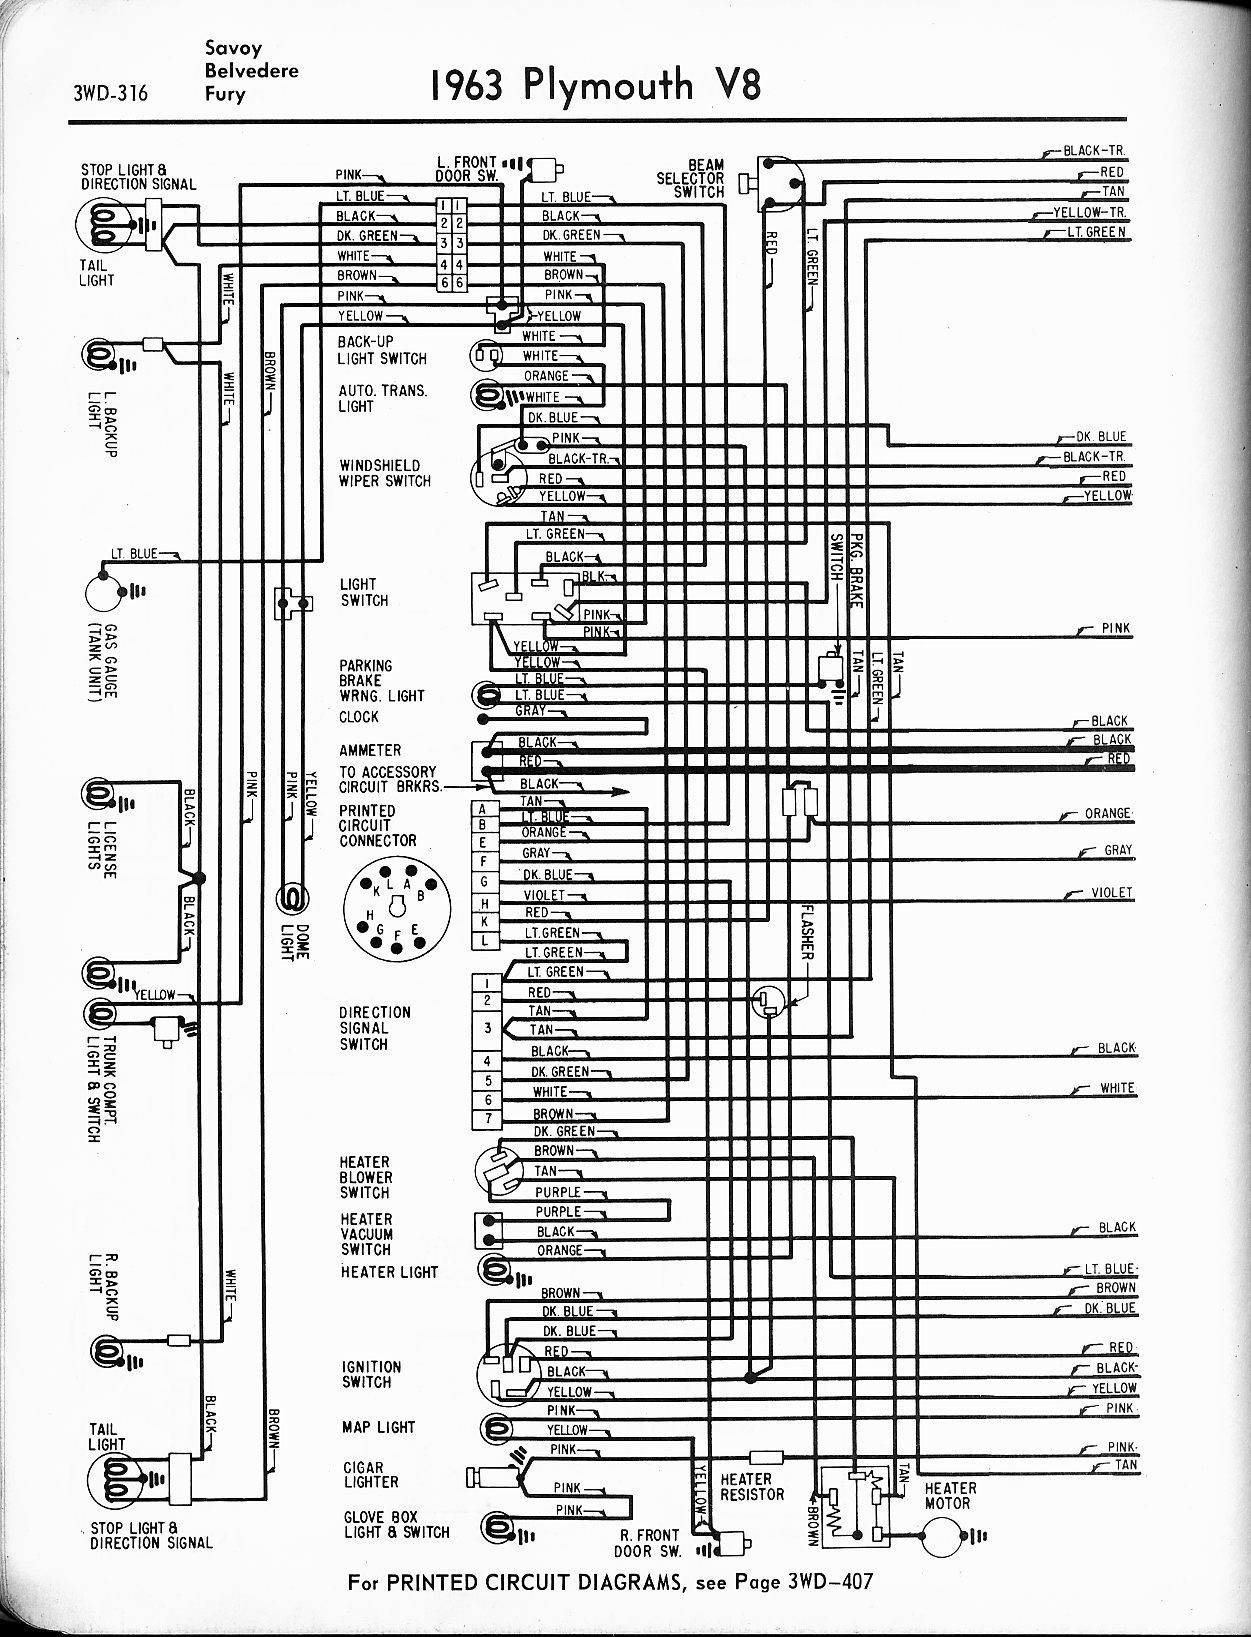 Wiring Diagram For 1966 Fury - Trusted Wiring Diagram •